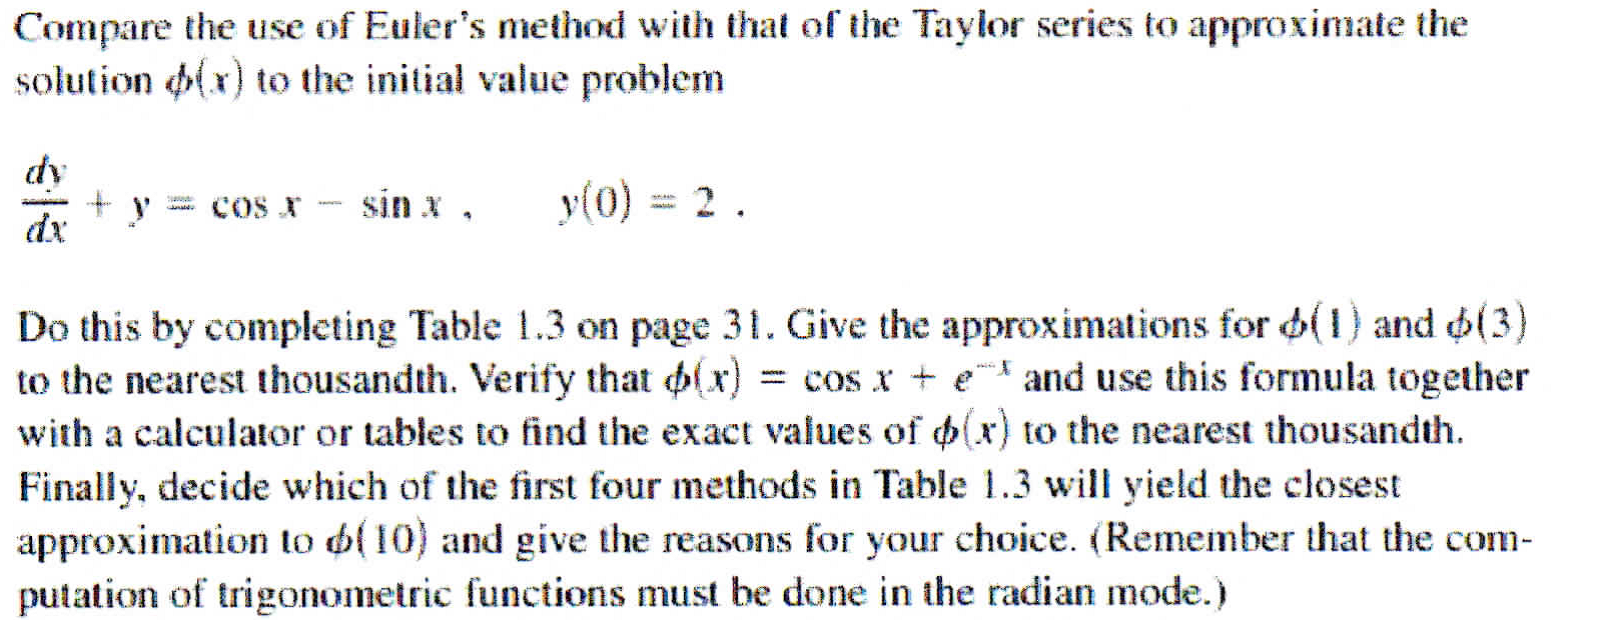 euler s method and taylor series Is called euler's backward method the method defined by (3) is usually called the midpoint method, while (3) and (4) together are known as the runge method , or modified euler method, which is considered as the oldest method of runge–kutta type (runge–kutta methods are characterized by the property that each step involves a.